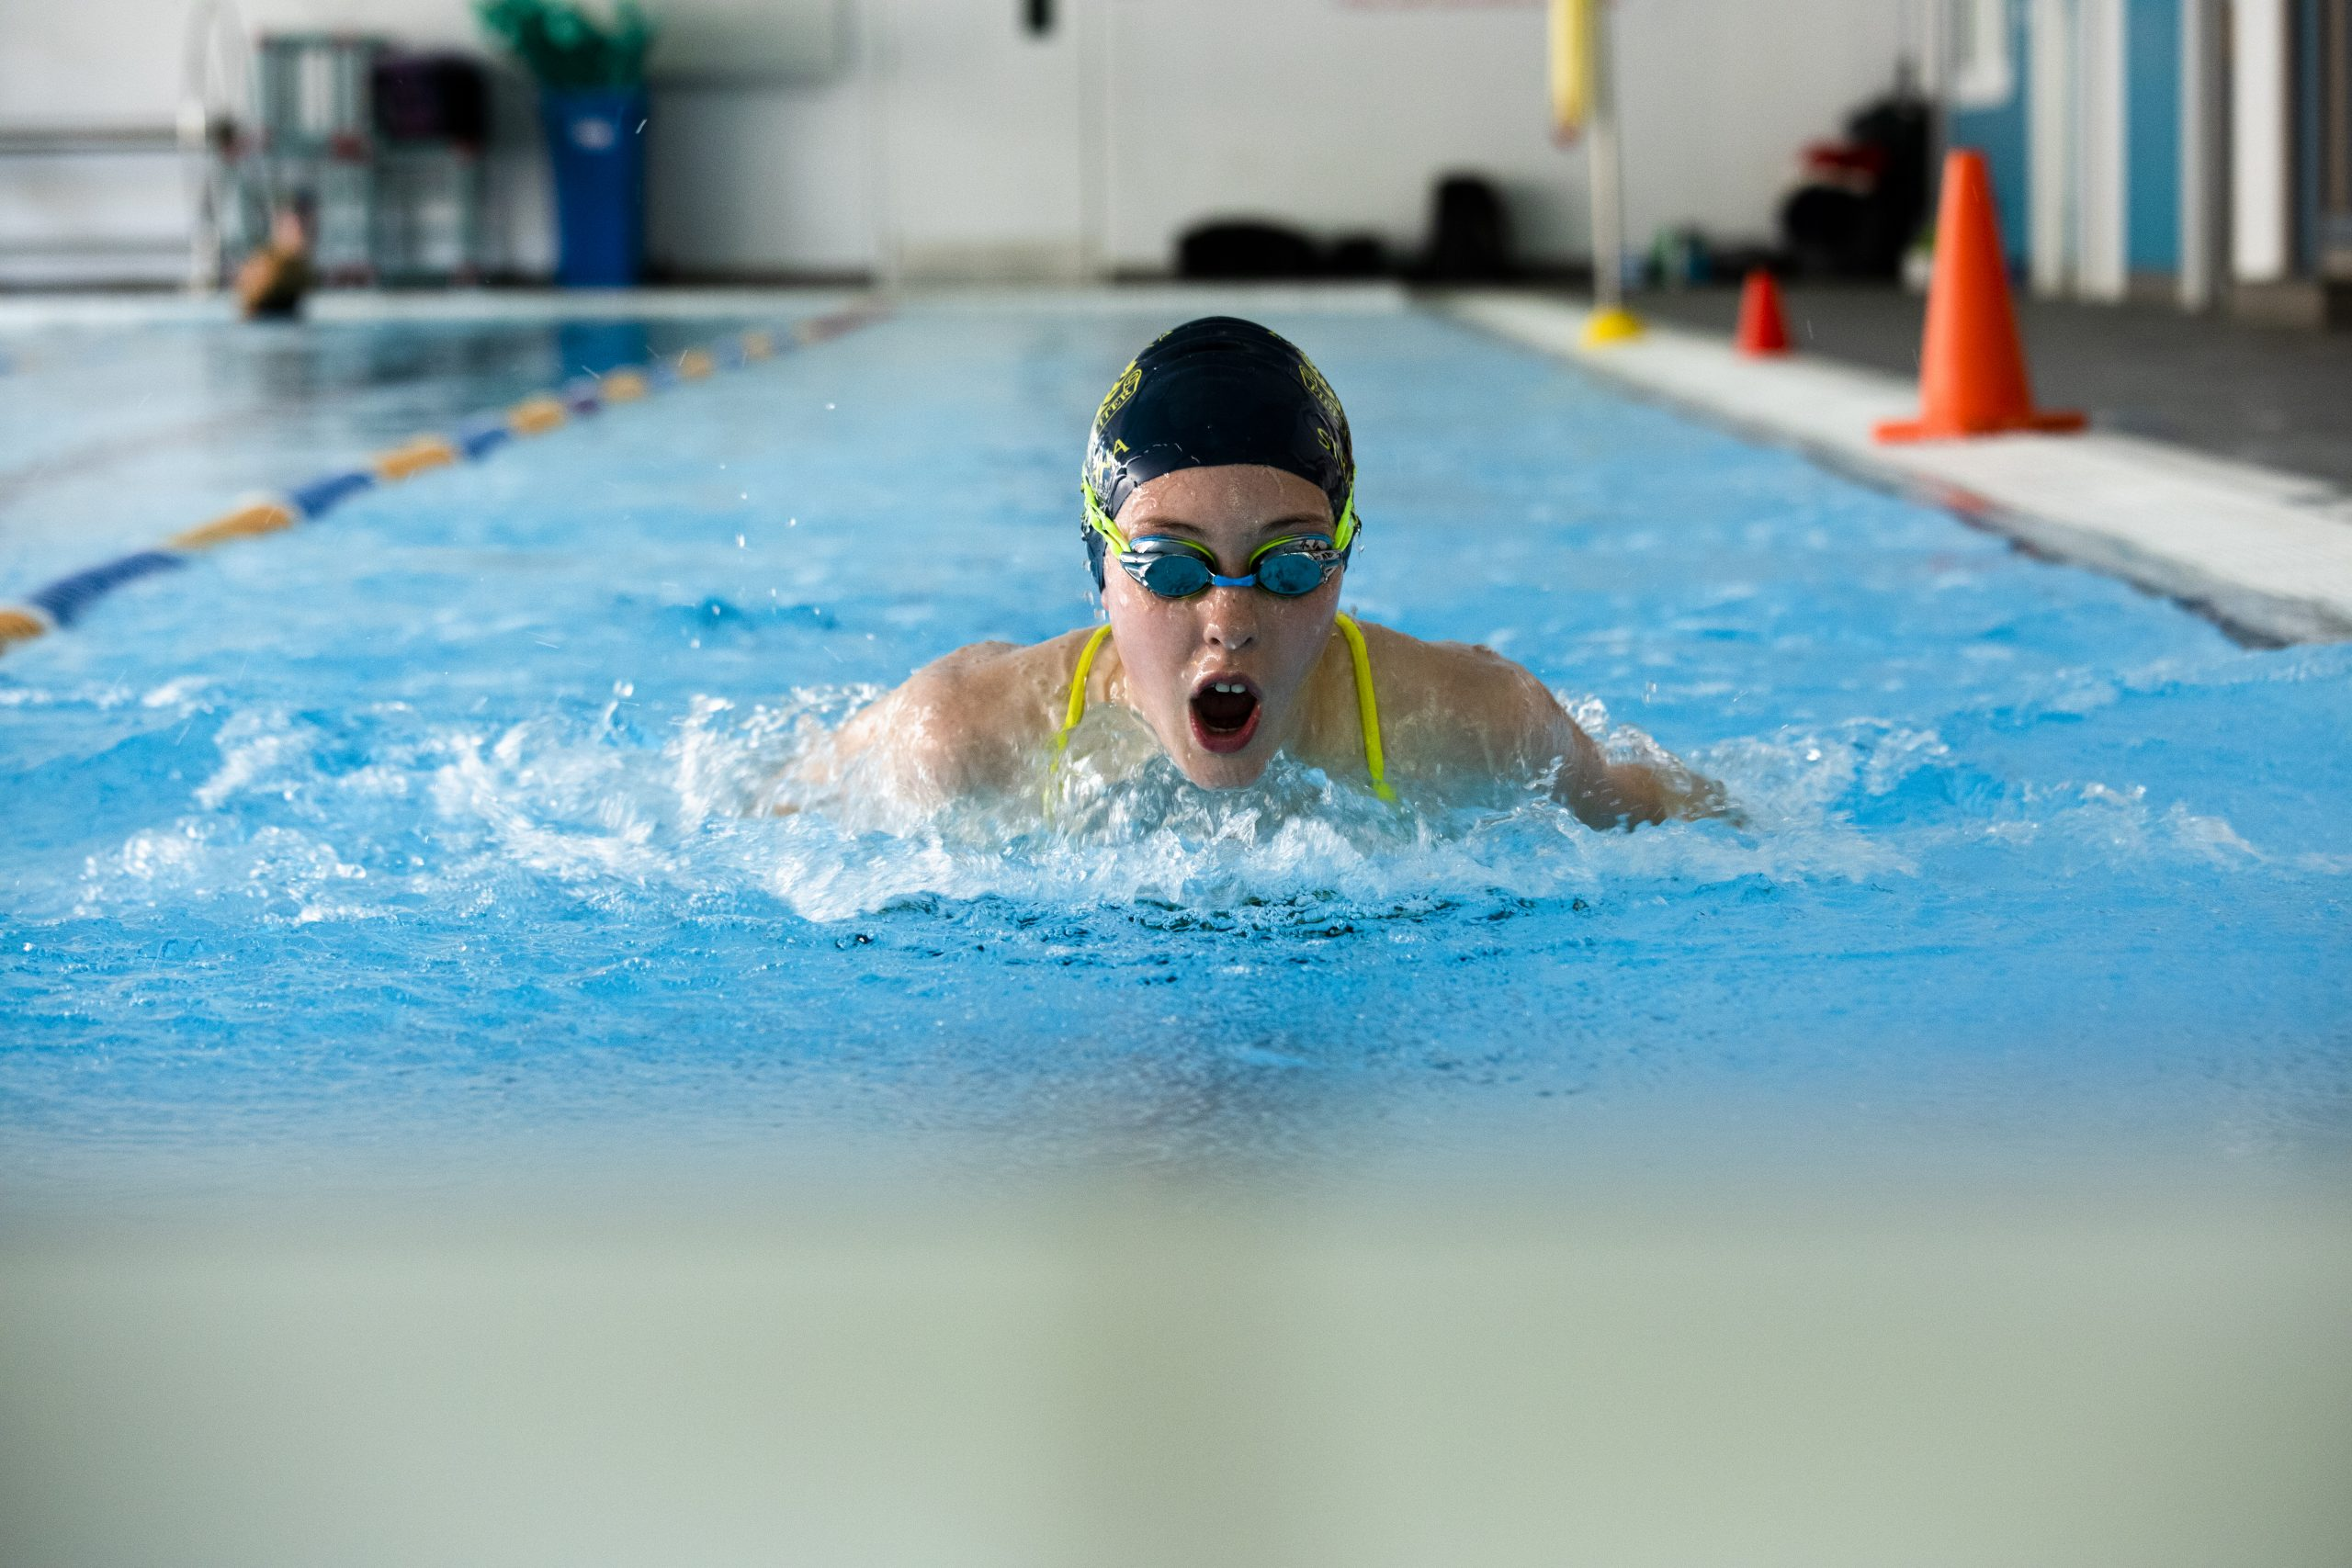 Co-curricular swim image